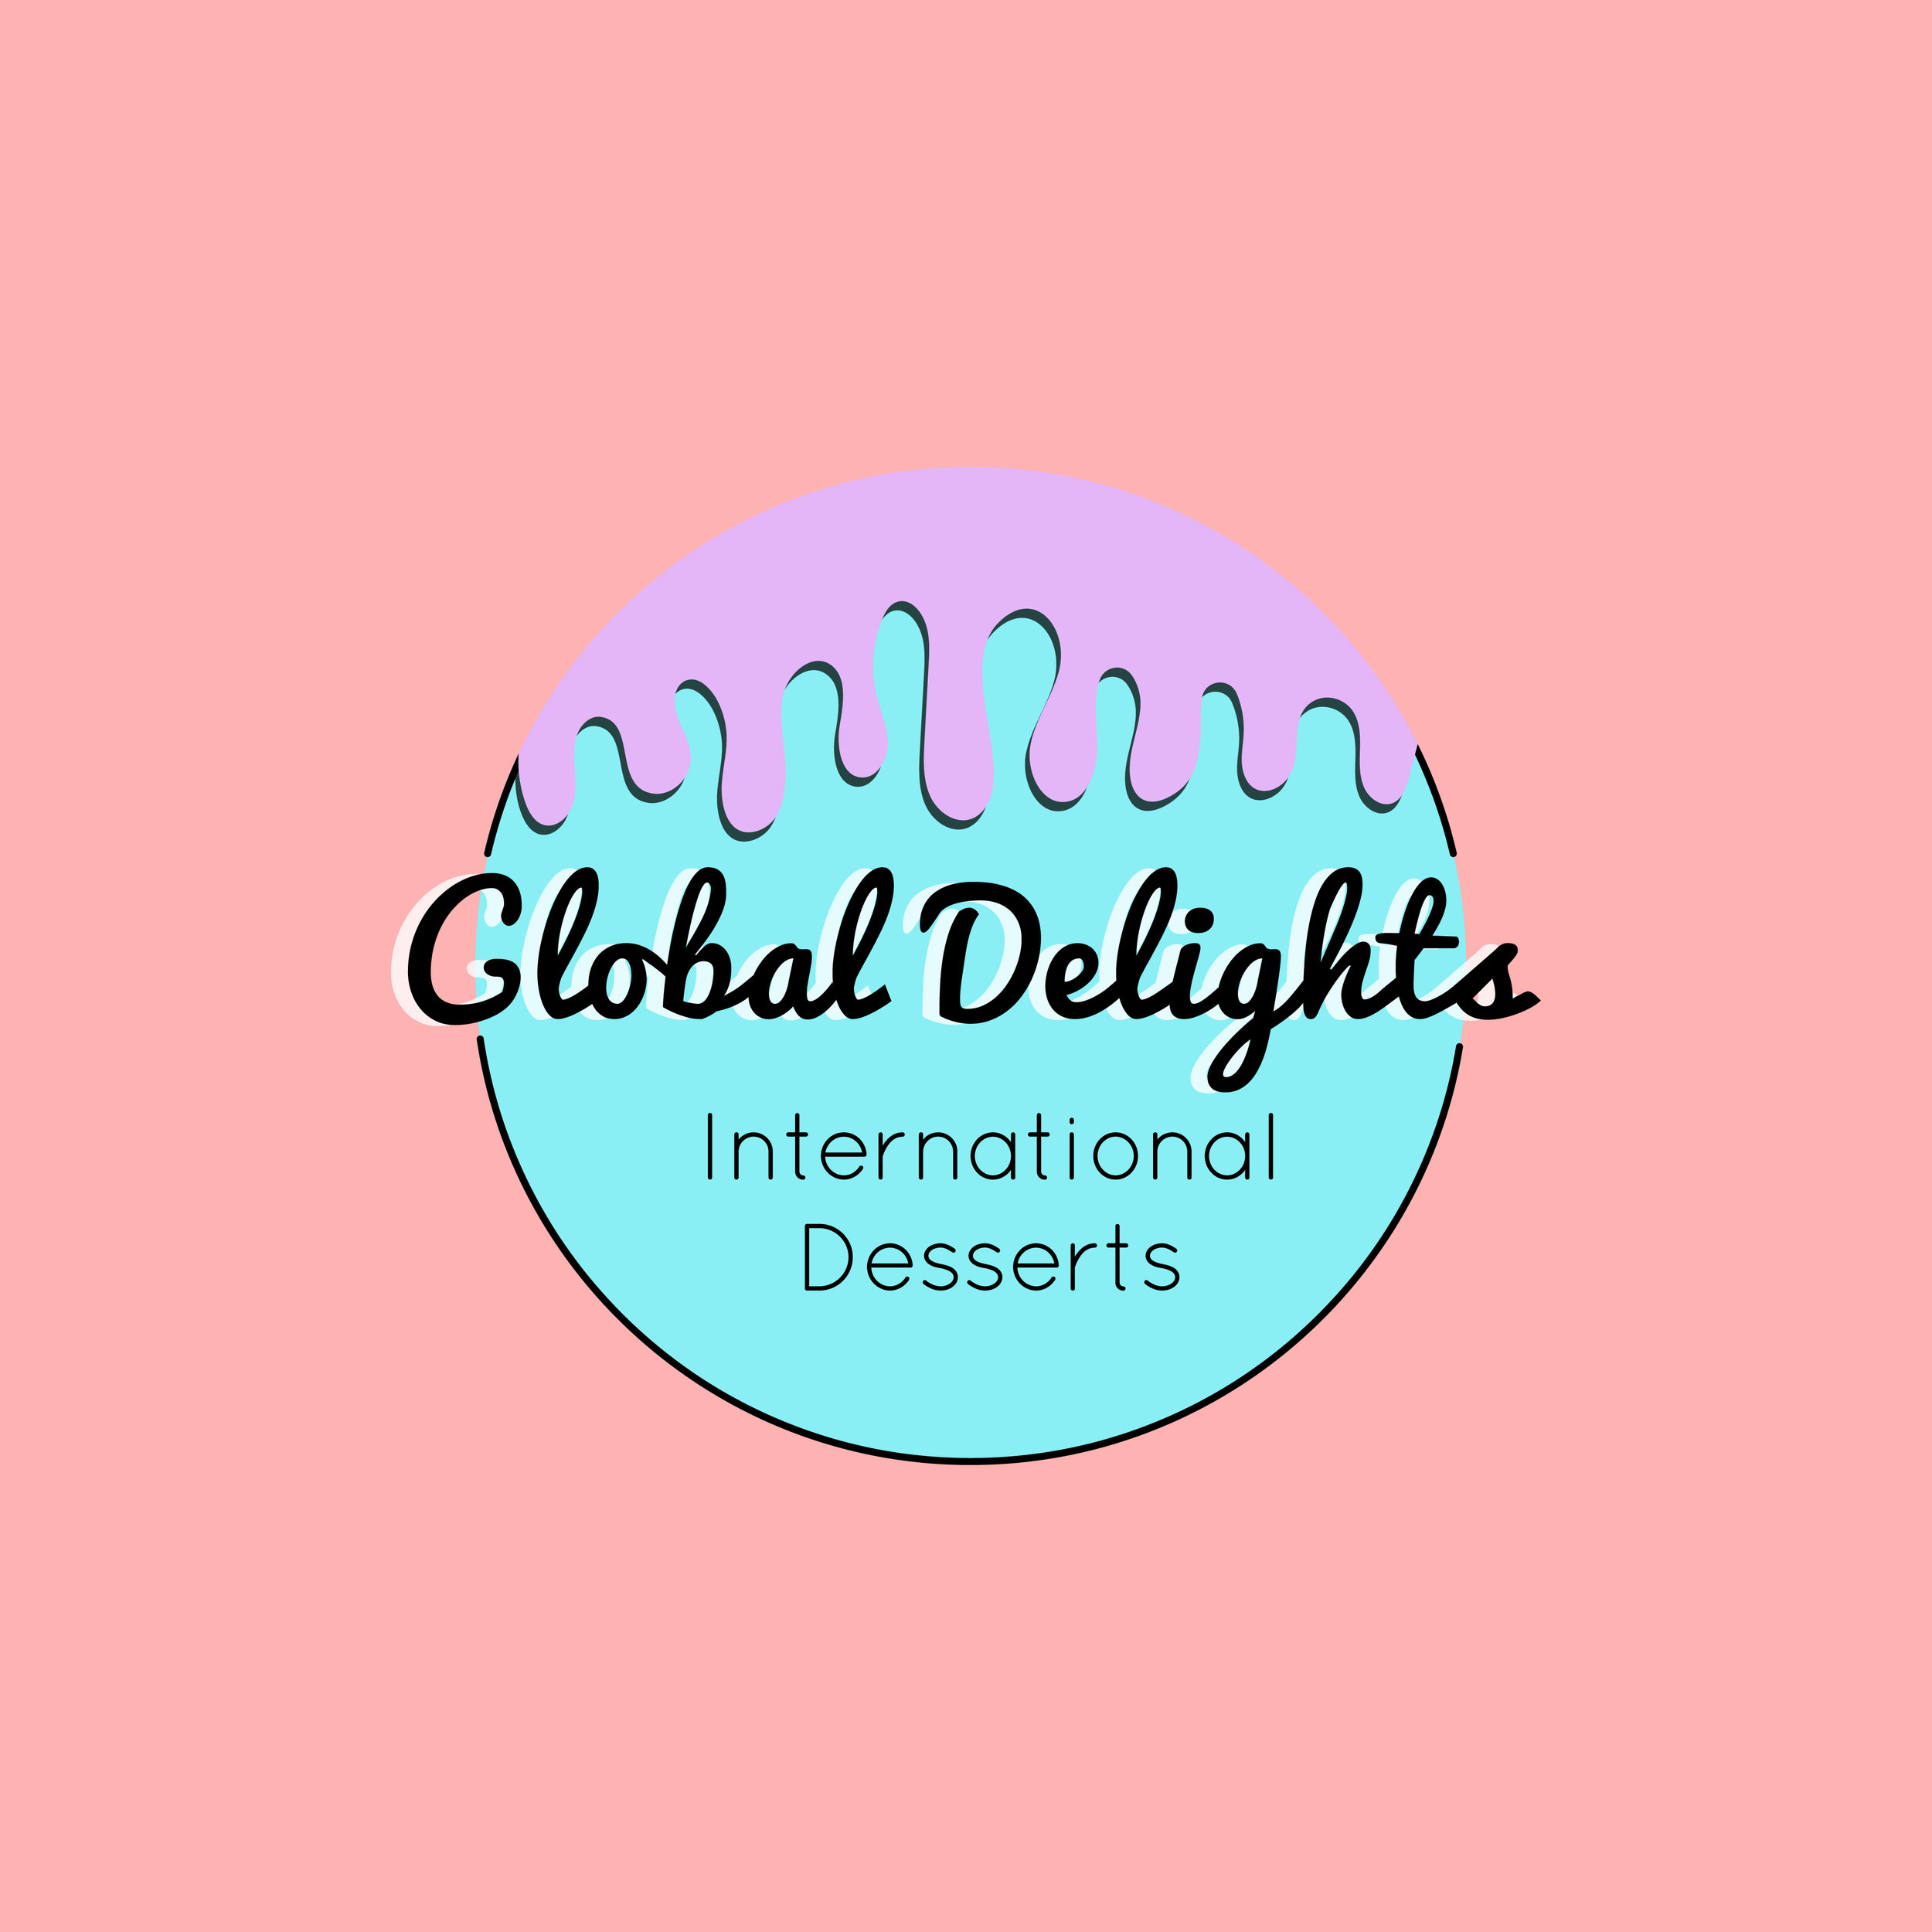 Global Delights Logo.jpg